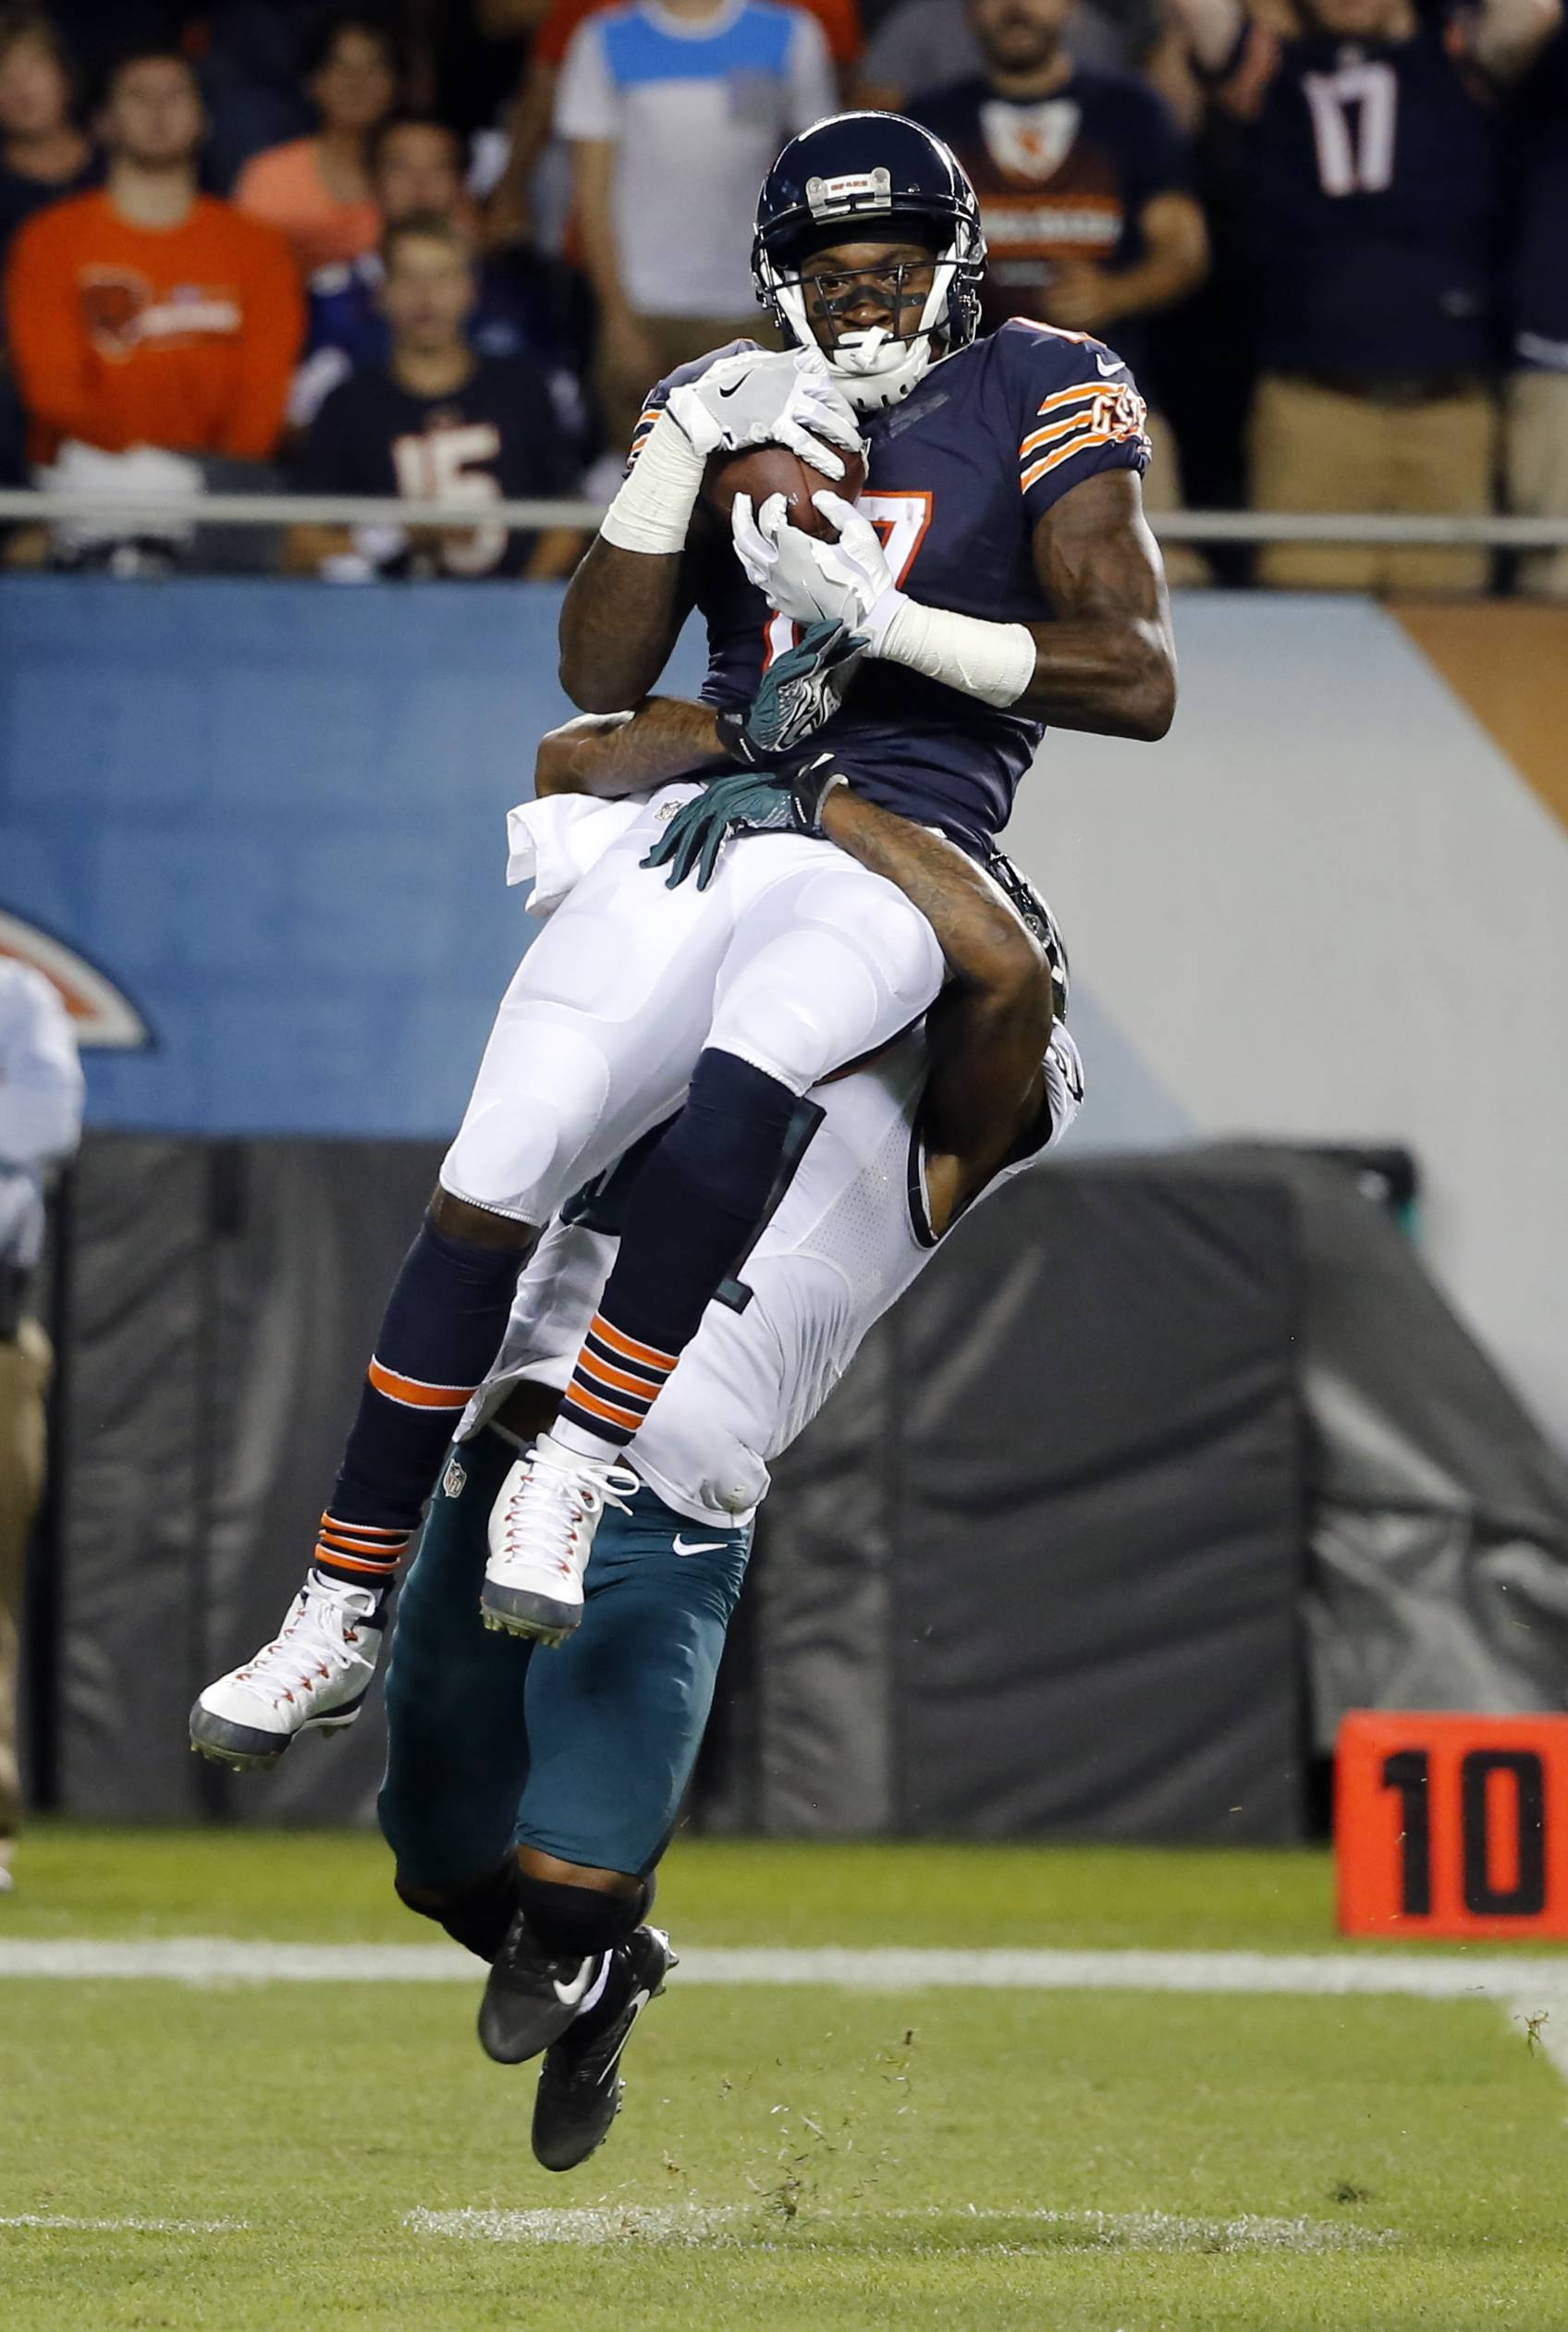 Bears wide receiver Alshon Jeffery makes a catch against Philadelphia Eagles free safety Jalen Mills during the first half on Monday in Chicago.